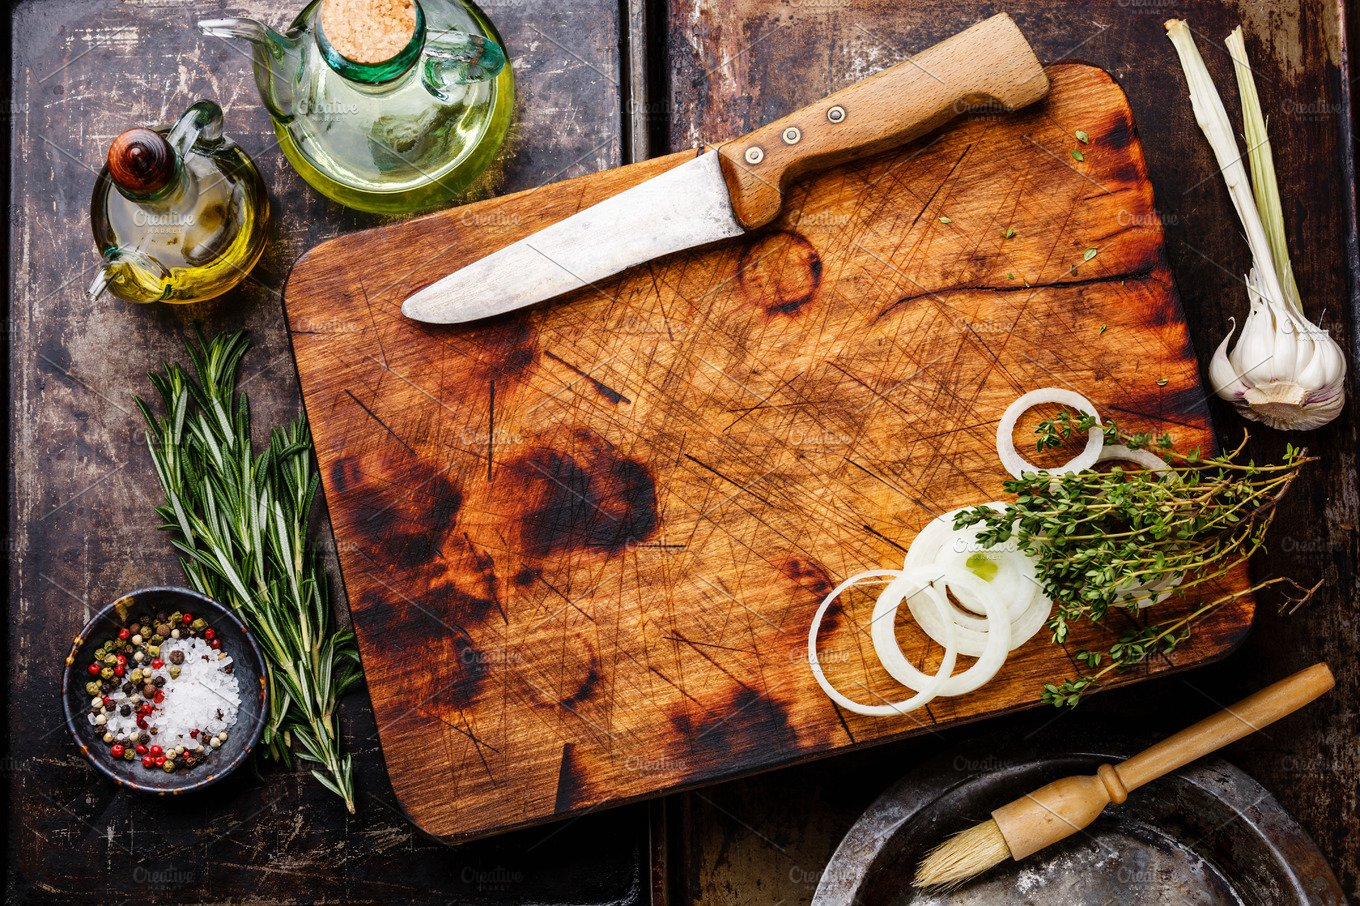 Wooden Chopping Board Background Food Amp Drink Photos